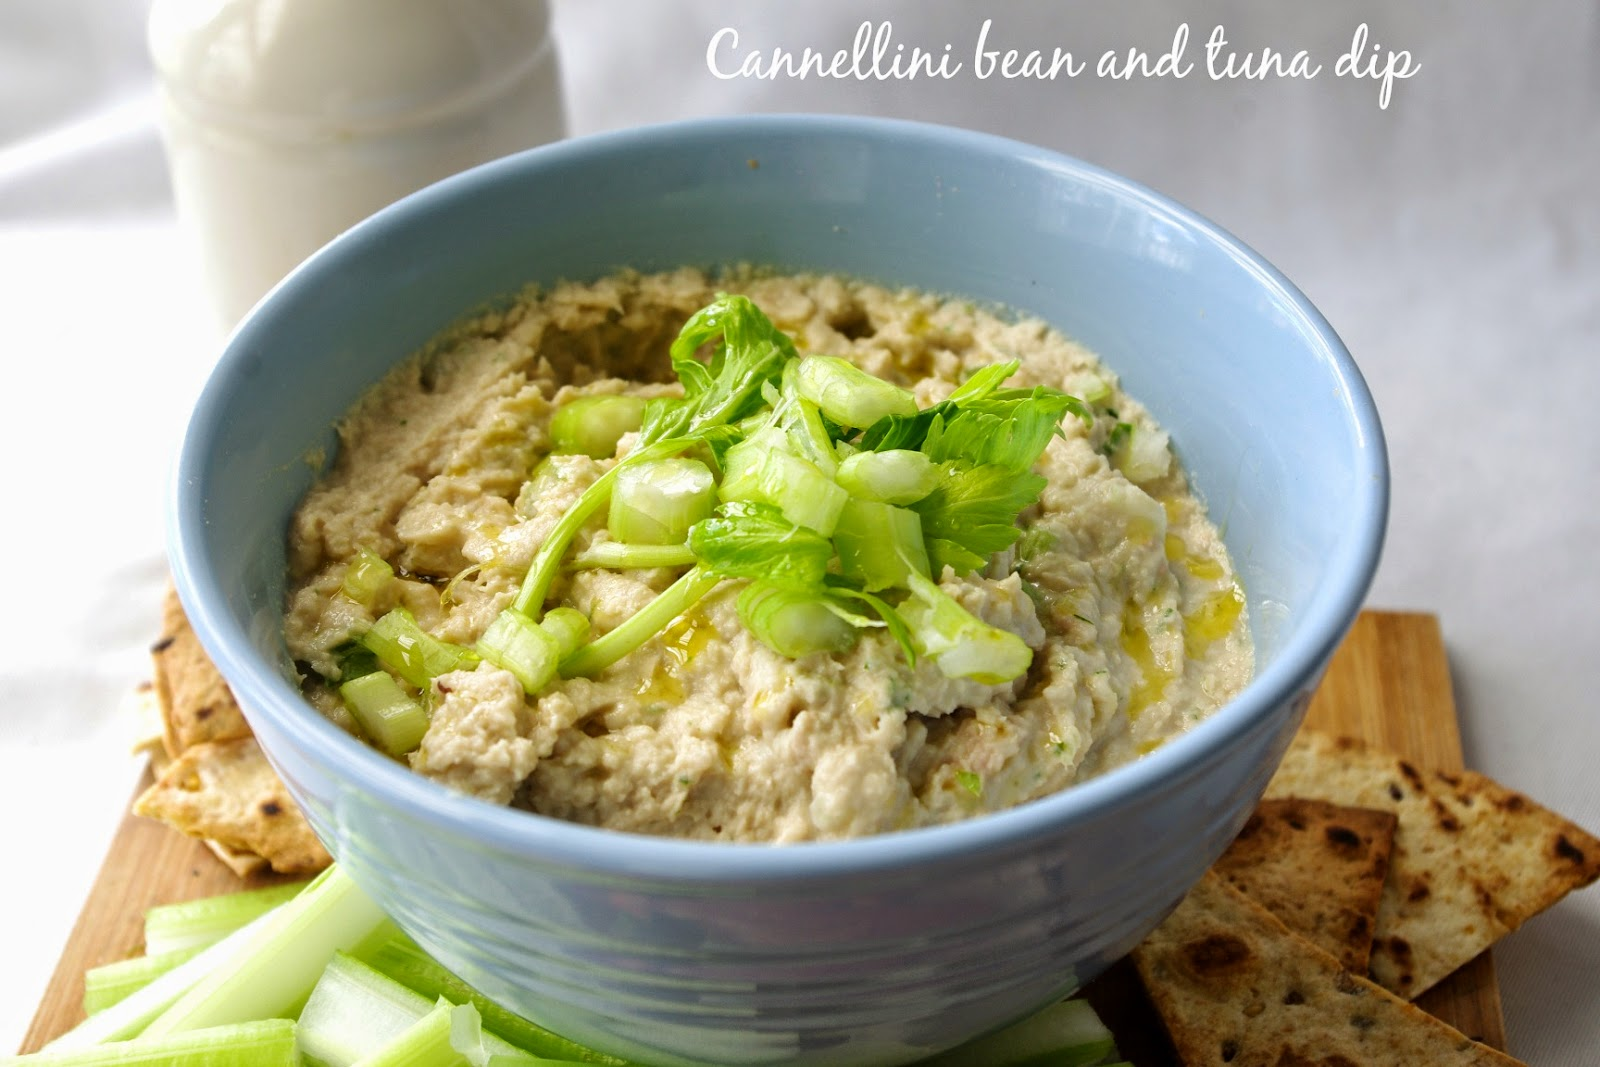 Cannellini bean and tuna dip